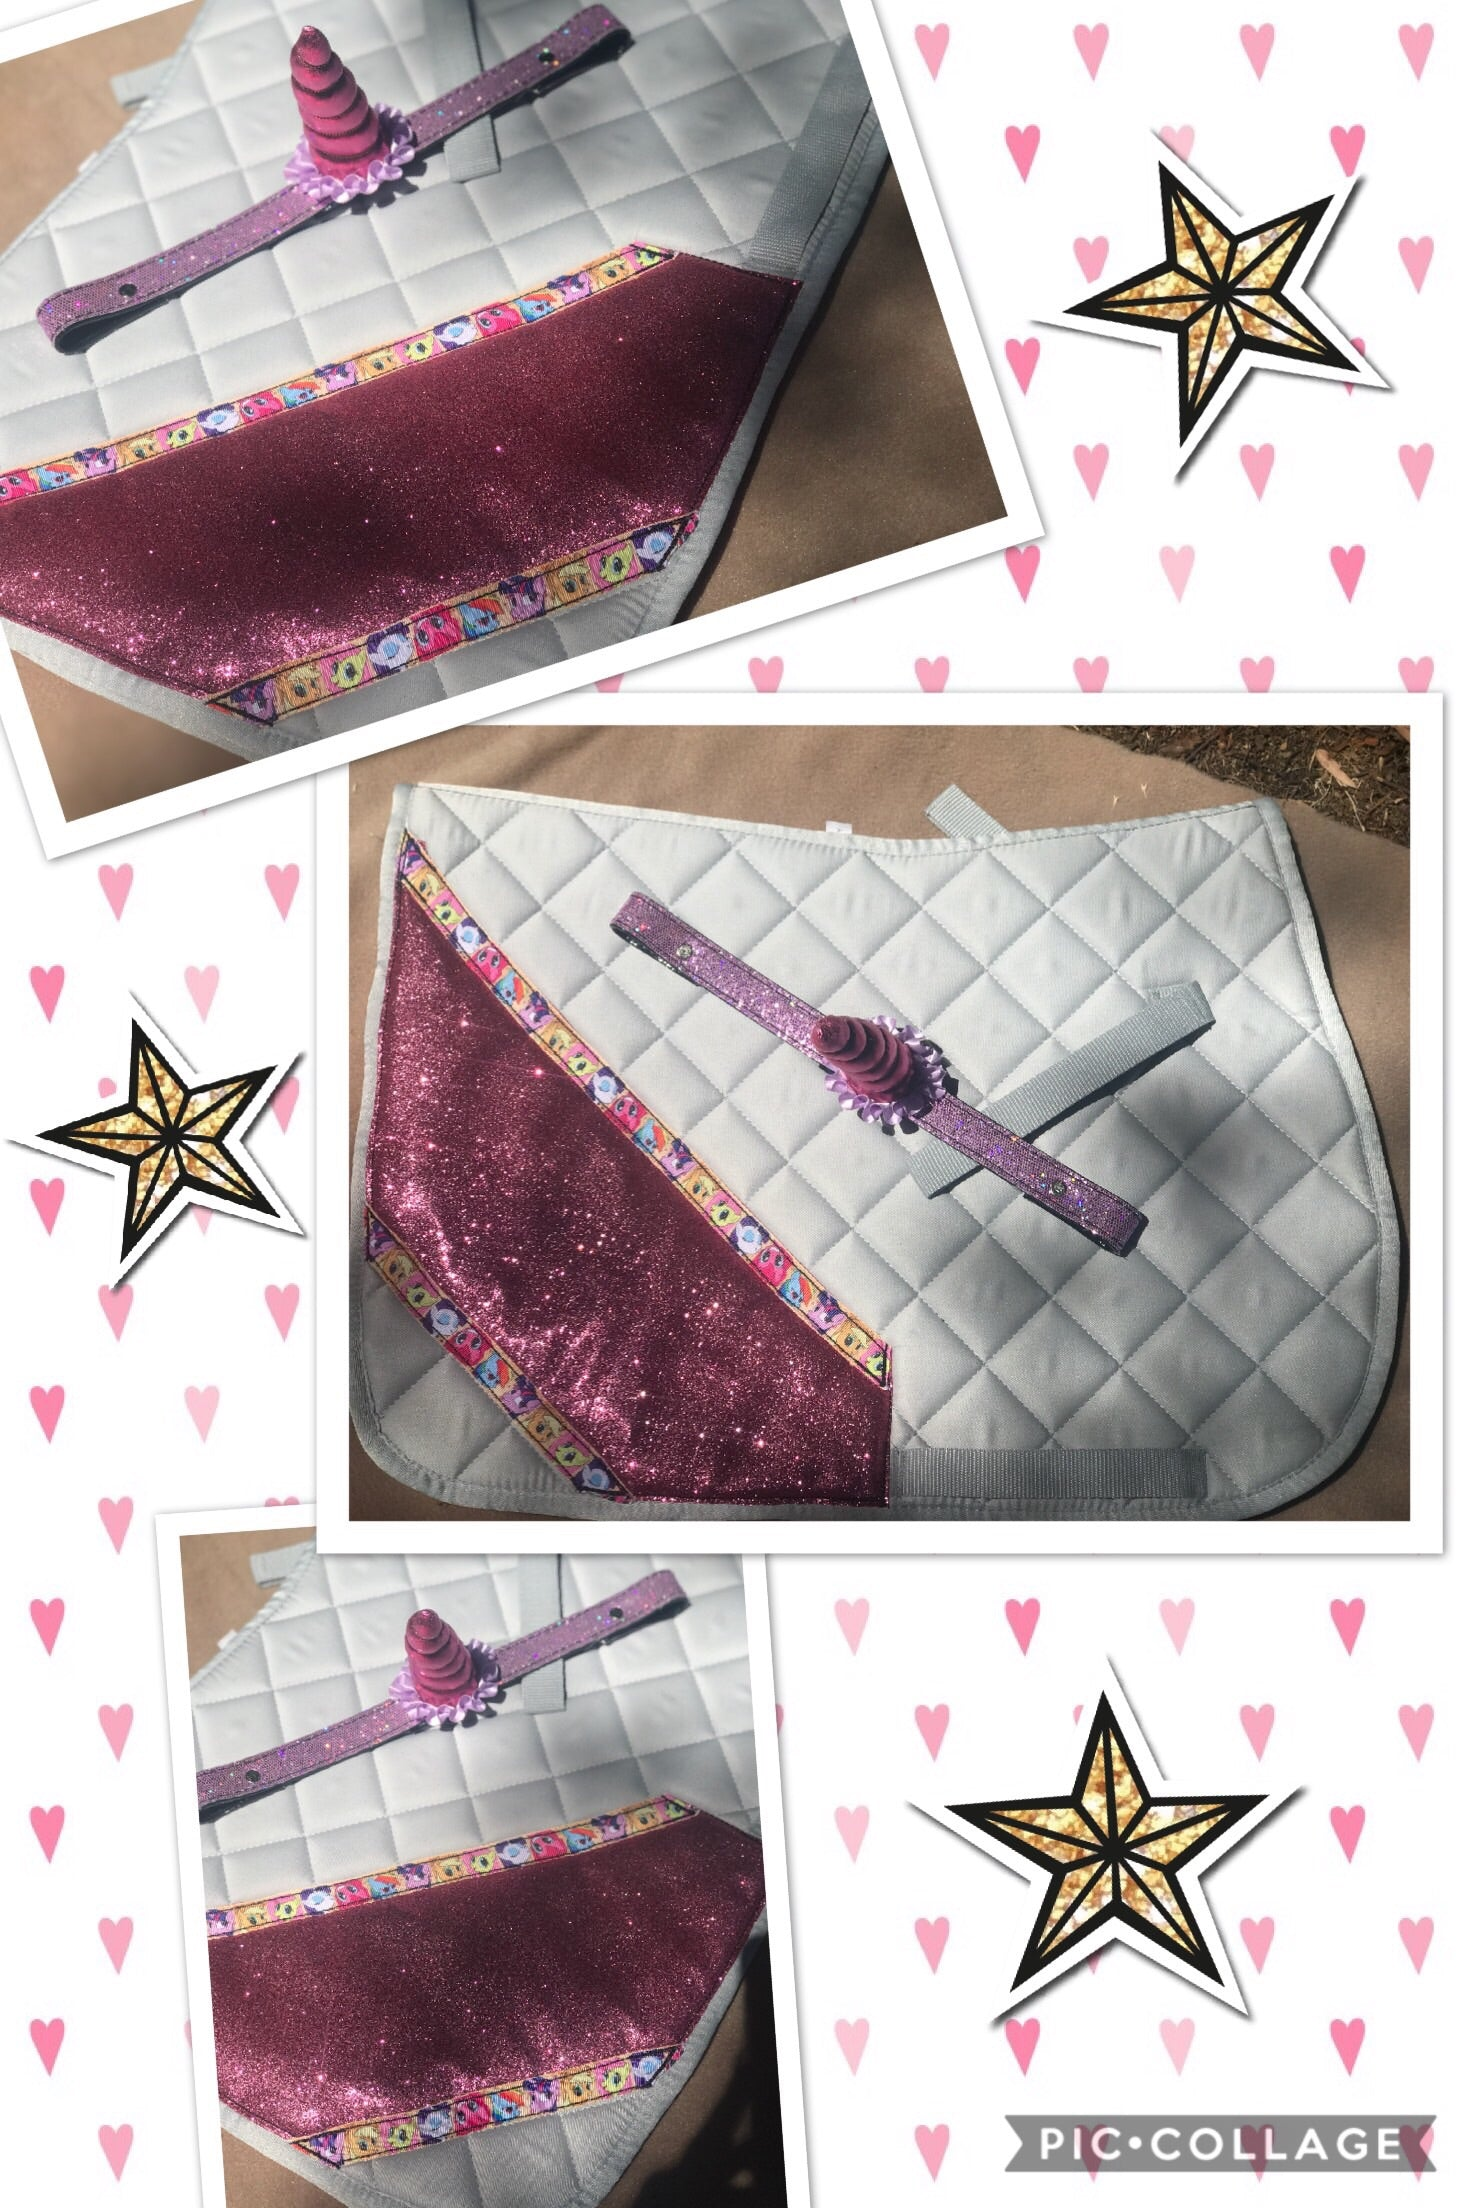 Pink sparkly saddle cloth with unicorn browband